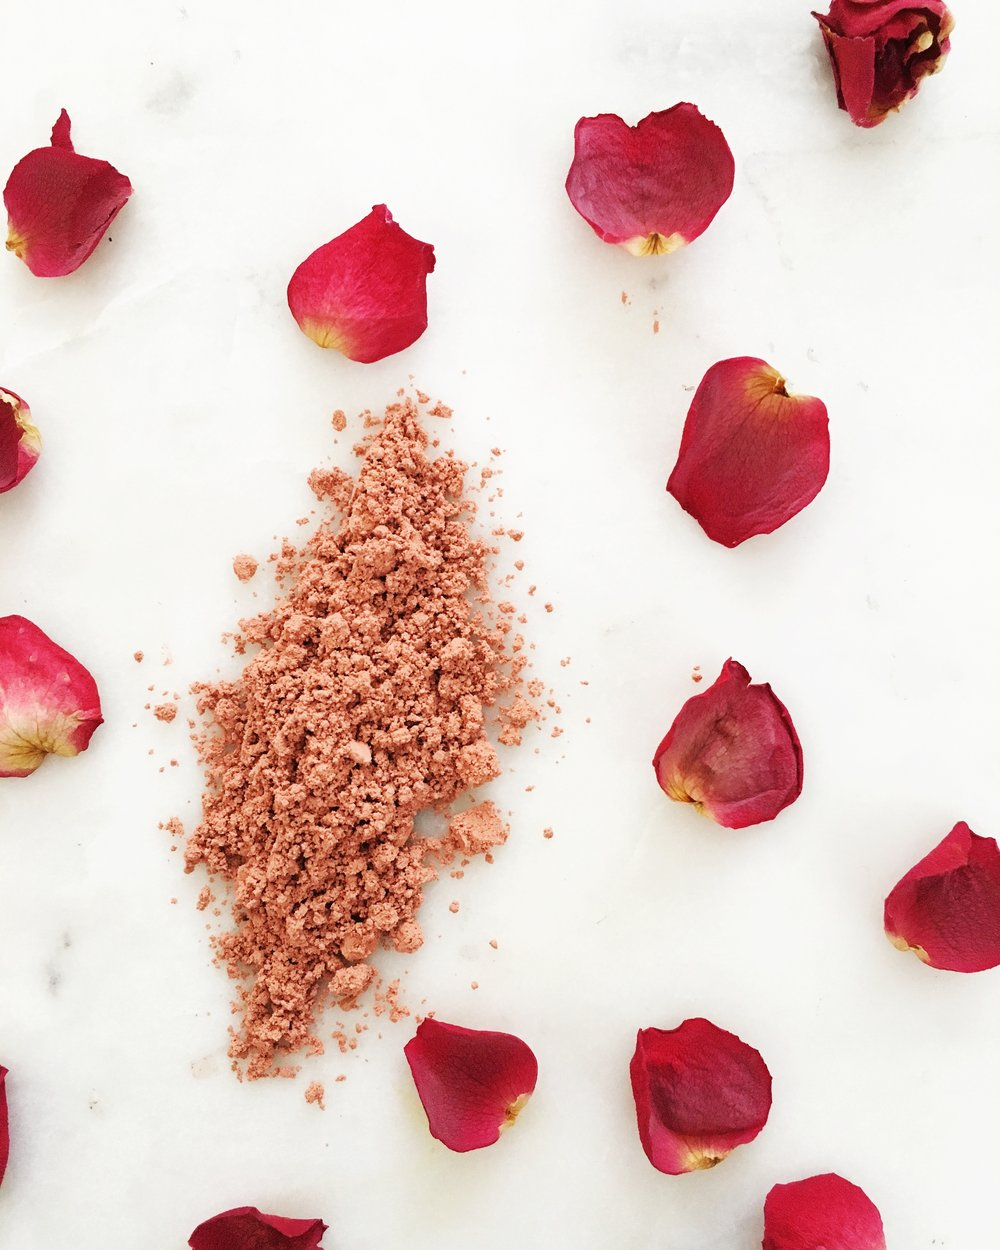 Rose clay_ coconut milk face mask.JPG